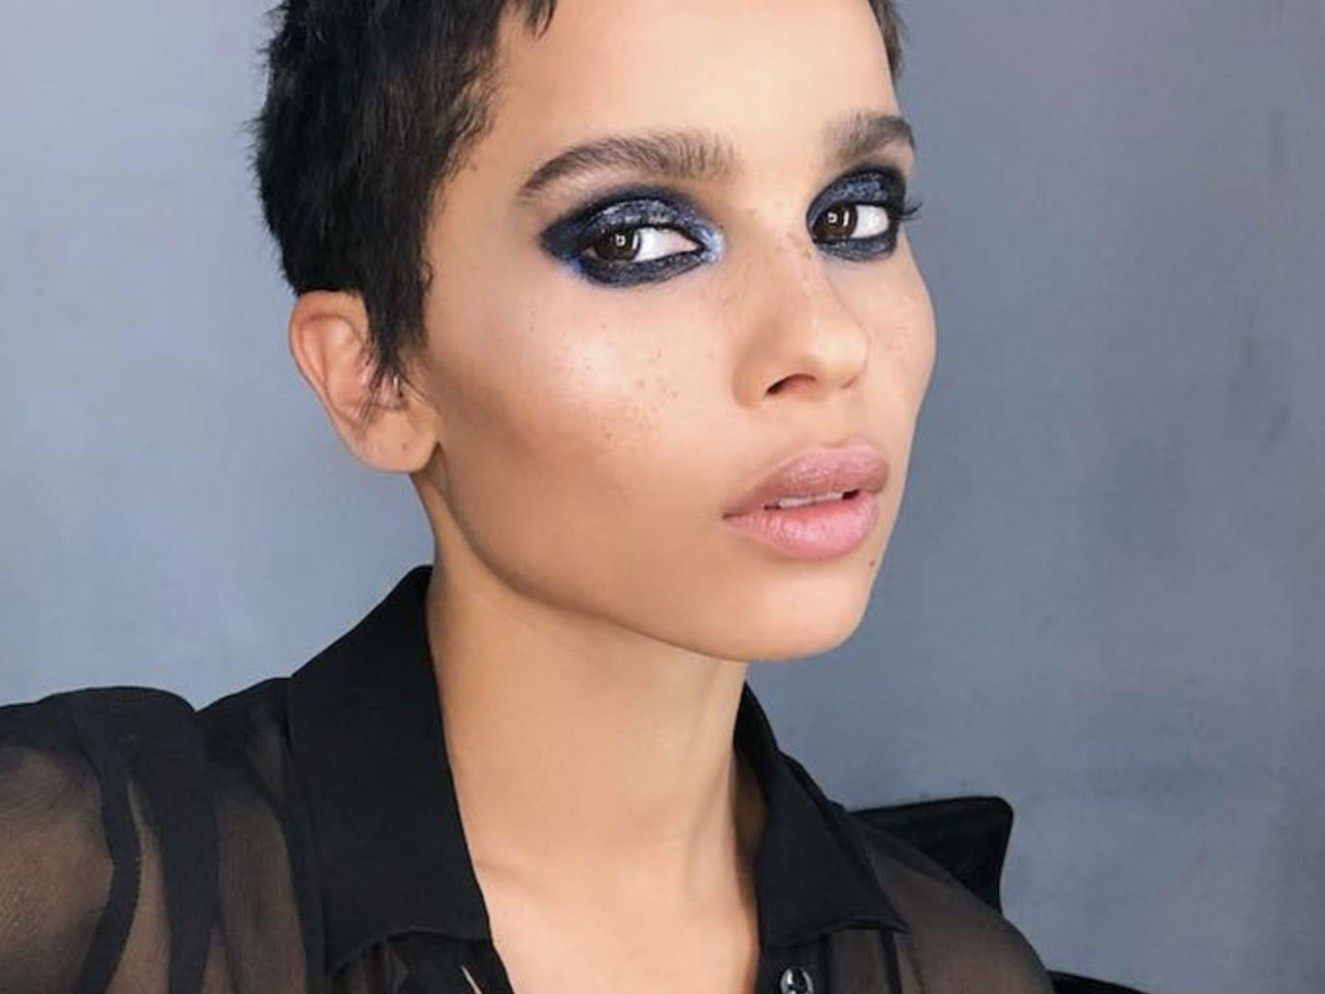 11 Short Natural Hairstyles To Inspire Your Next Look 90S Short Hairstyles Female